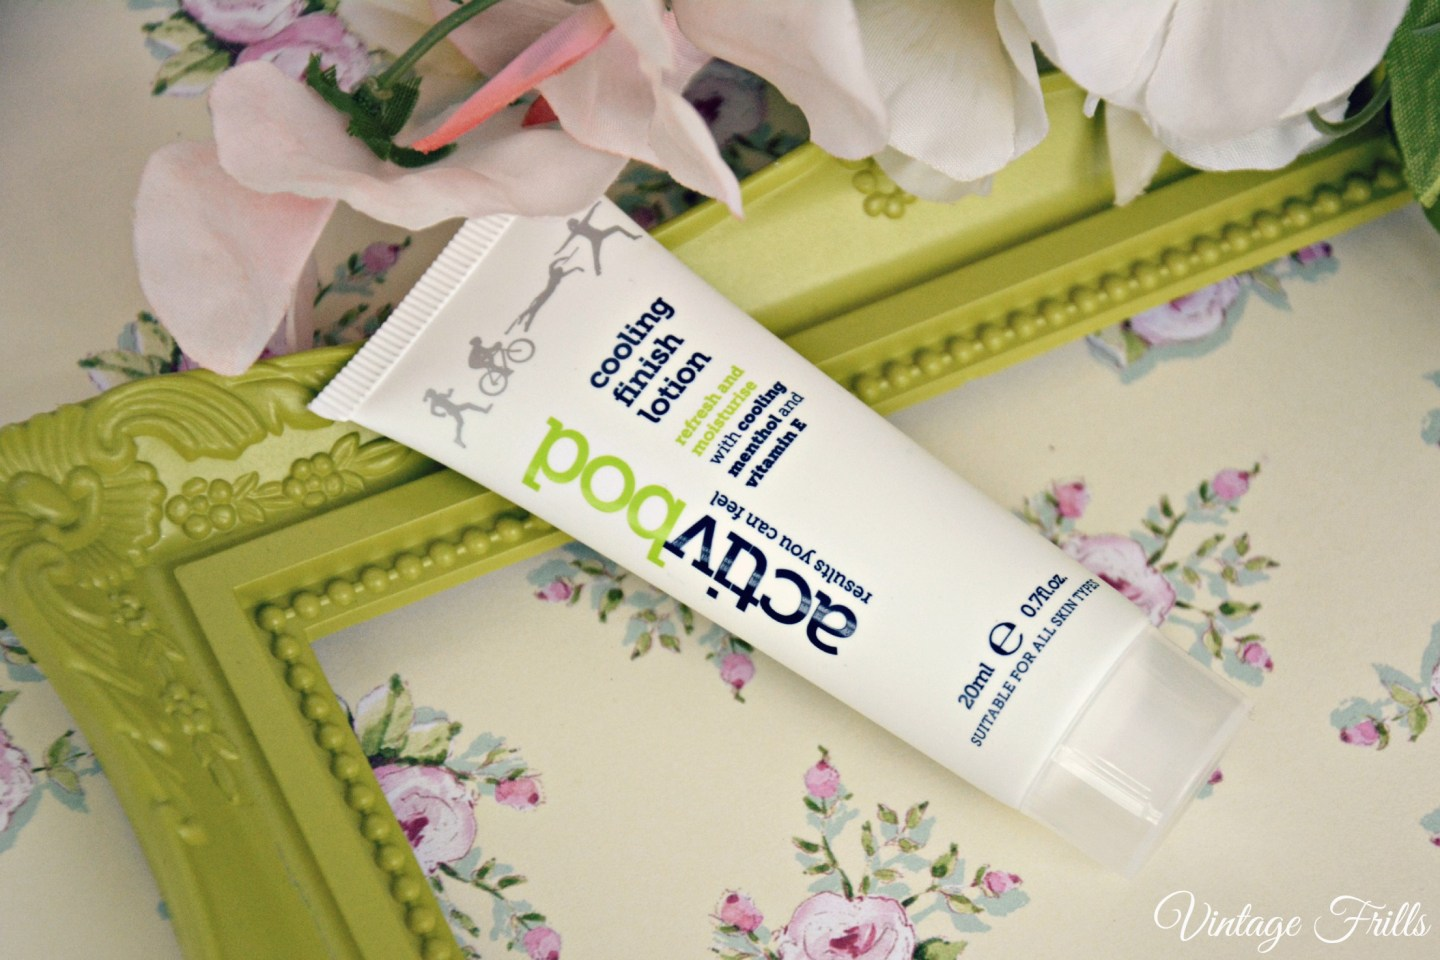 Birch box January 2015 Active Bob